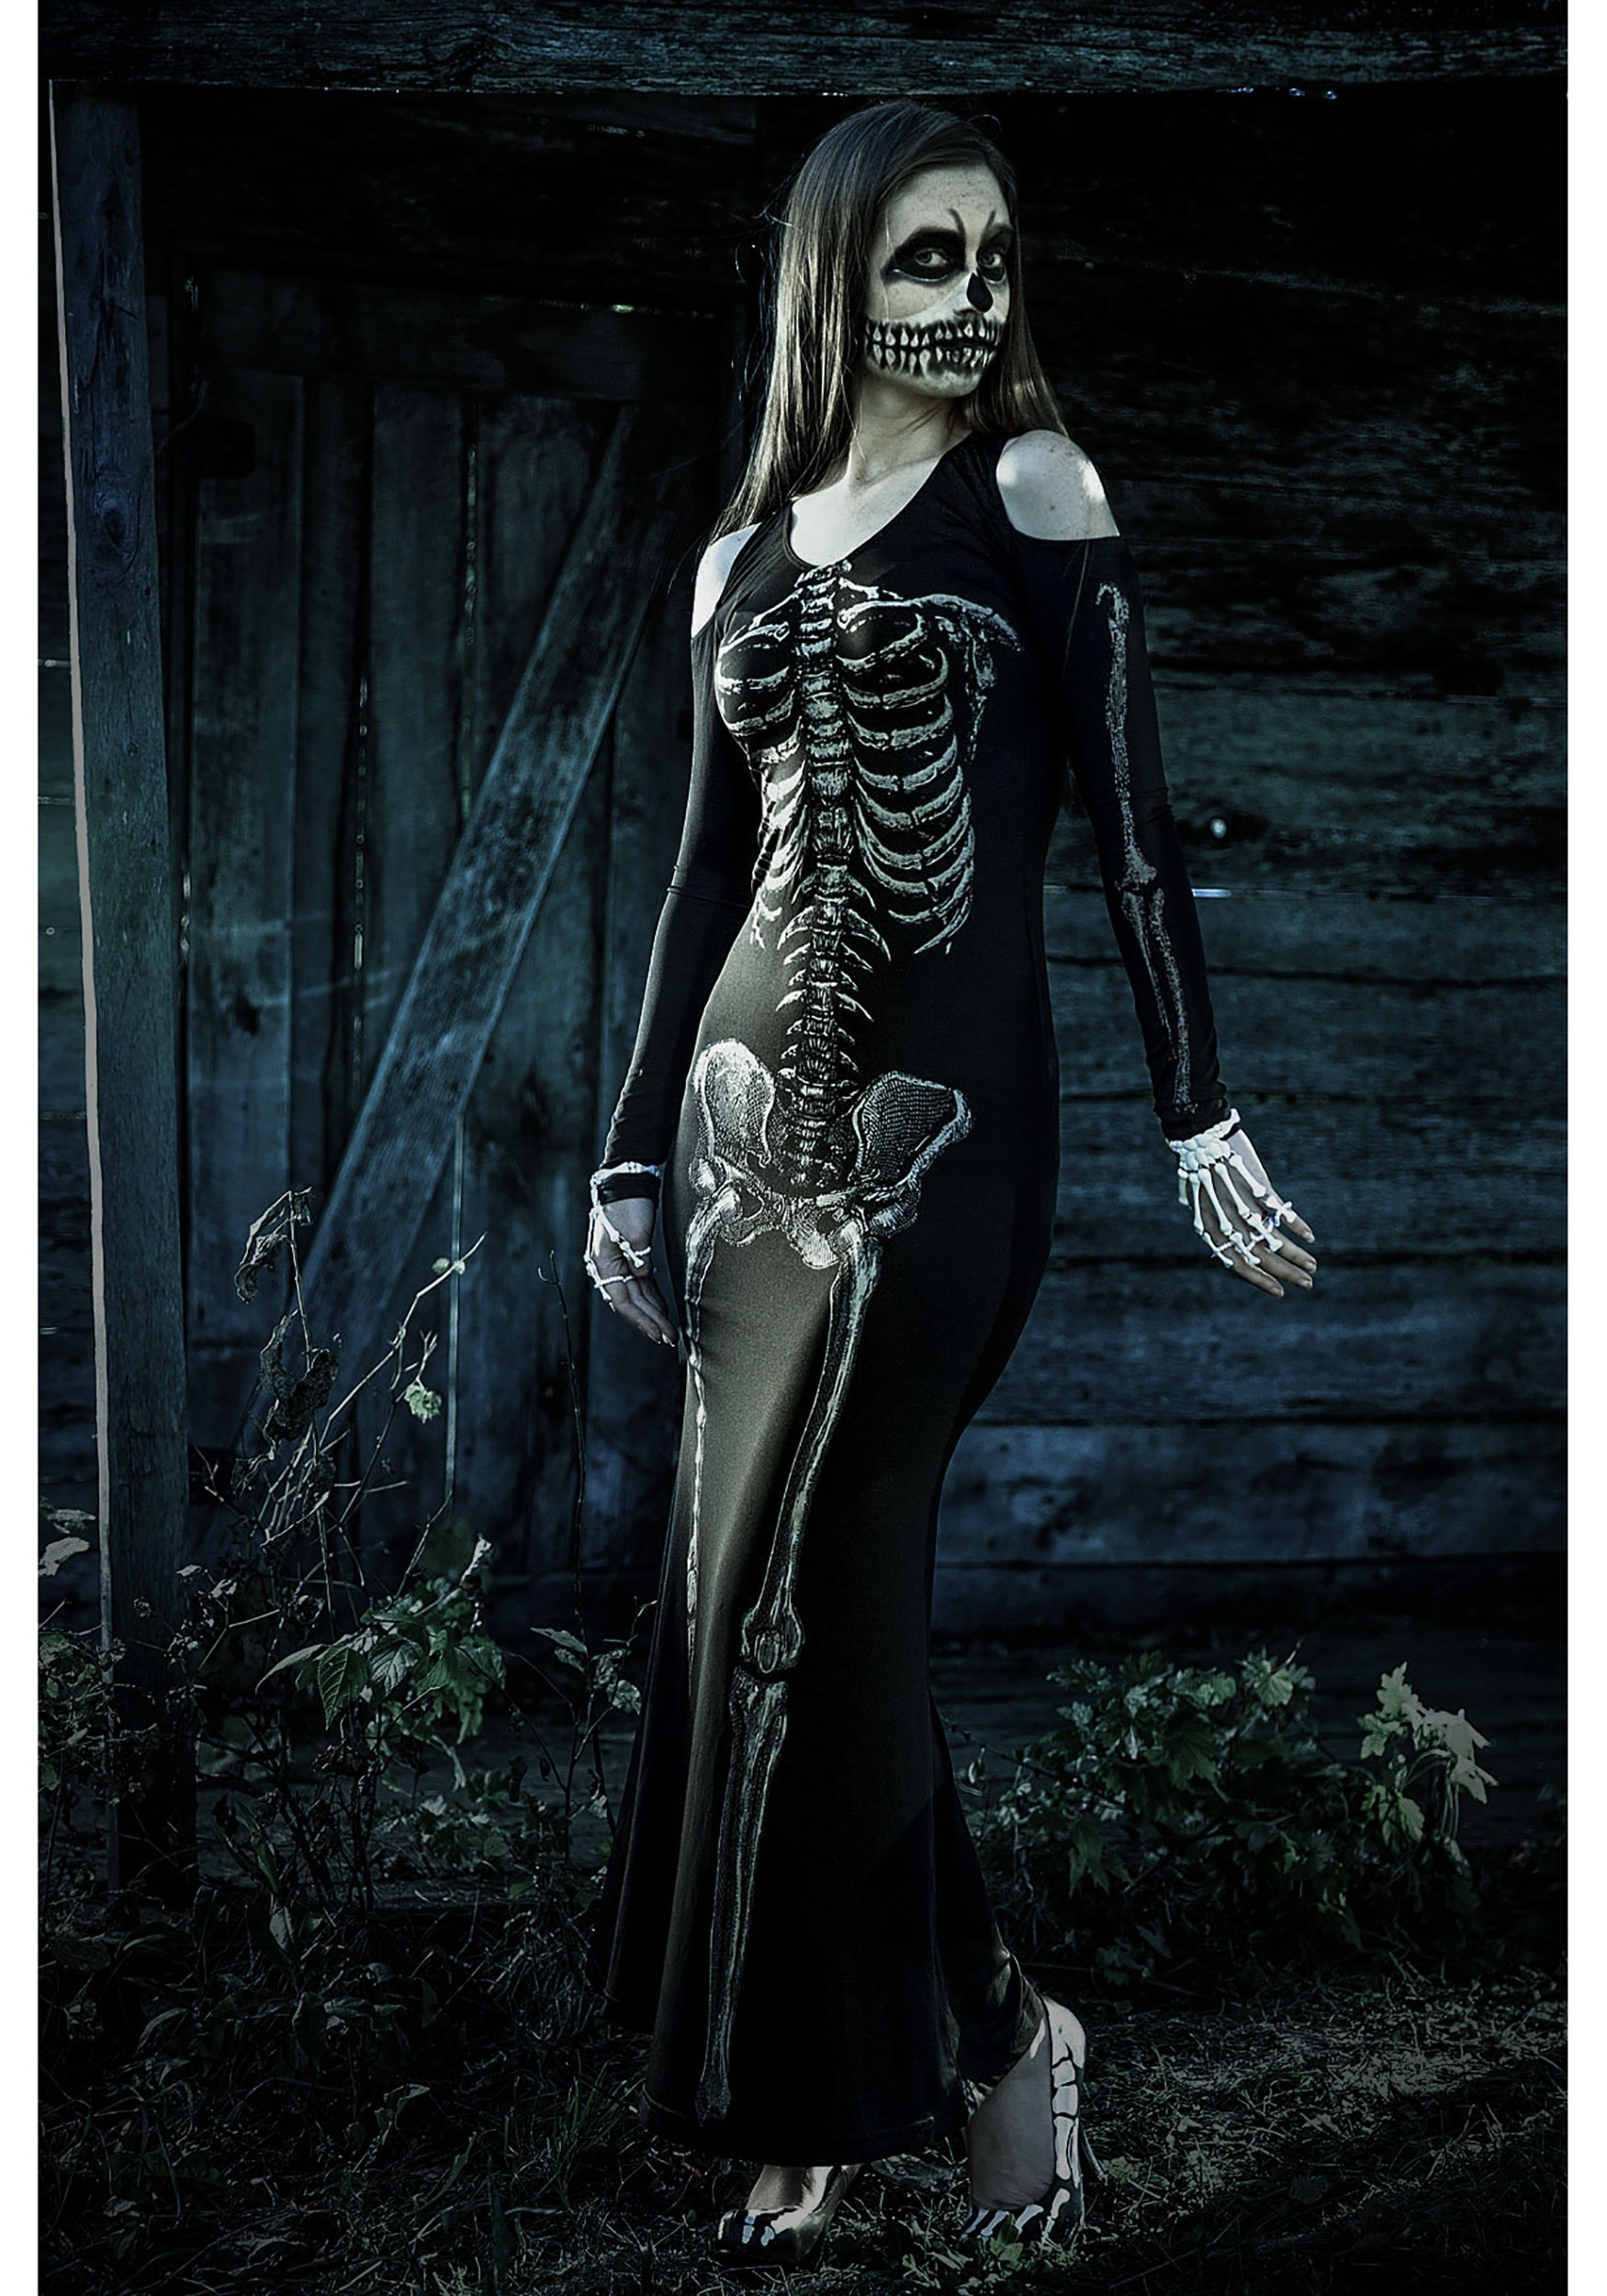 Baby Costumes Uk Women 39;s Bone Appetit Skeleton Long Dress Costume